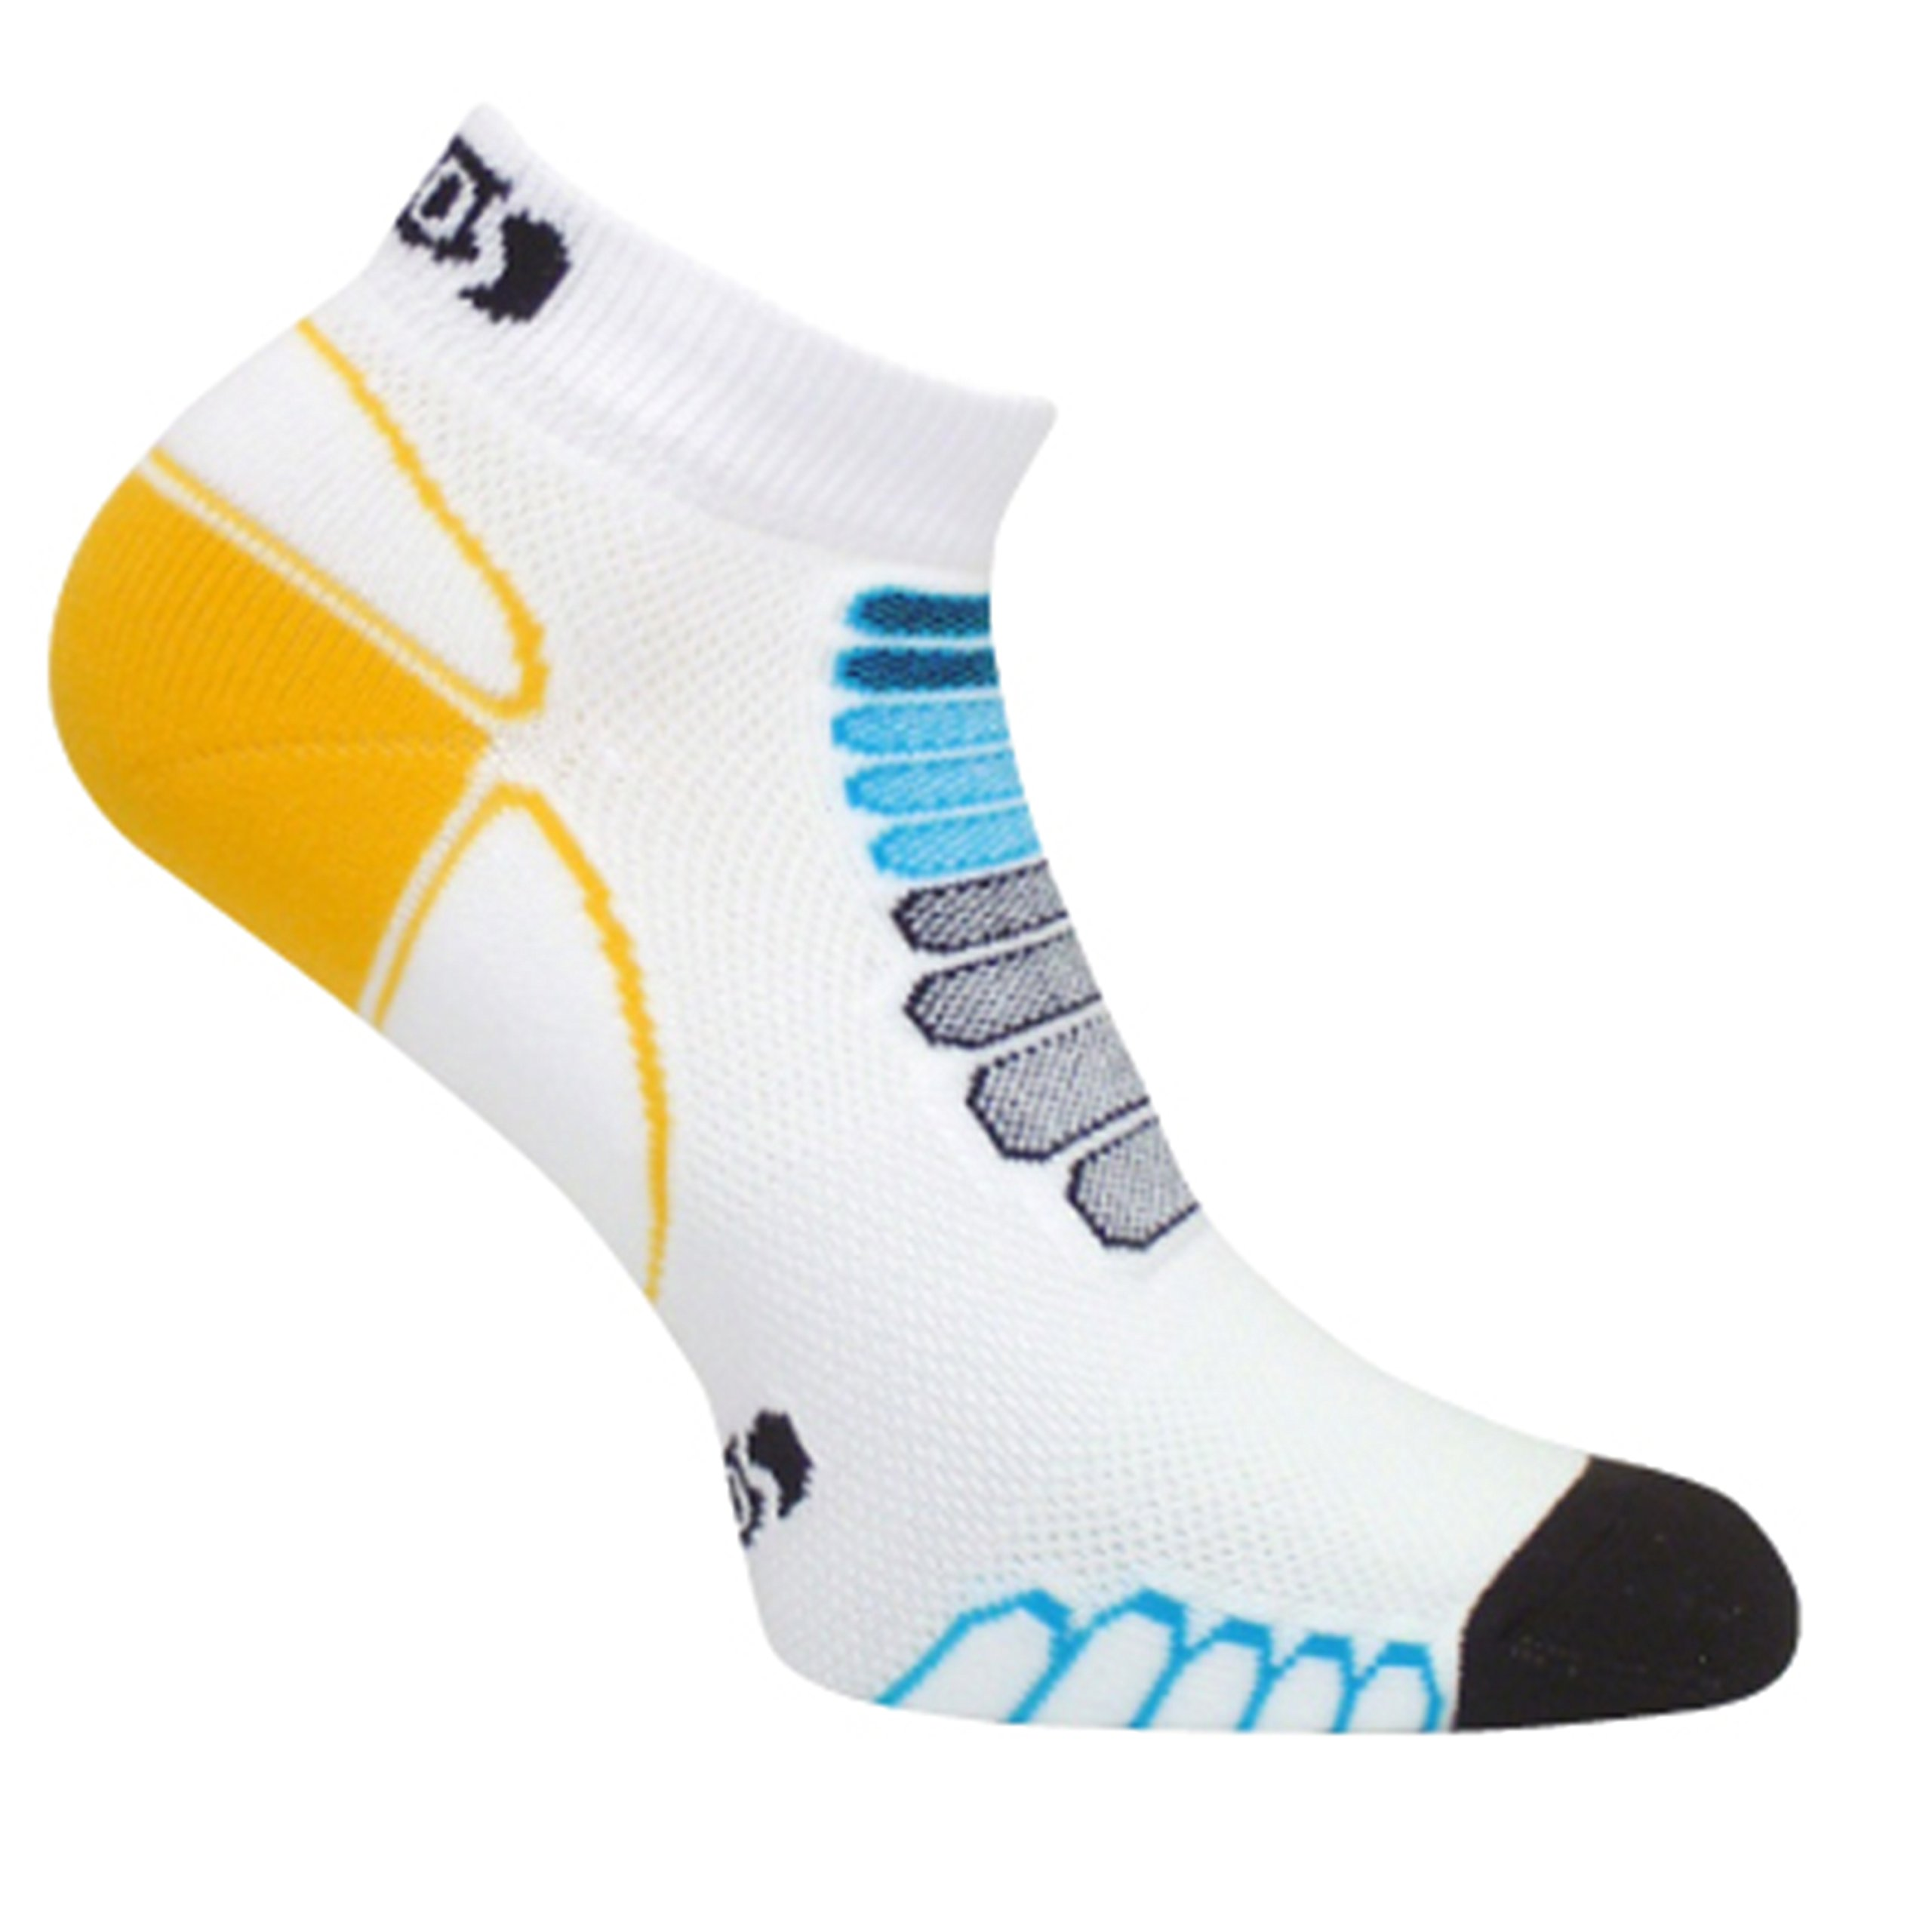 Eurosocks Sprint Silver Low Cut Light Weight Running Socks-Pair